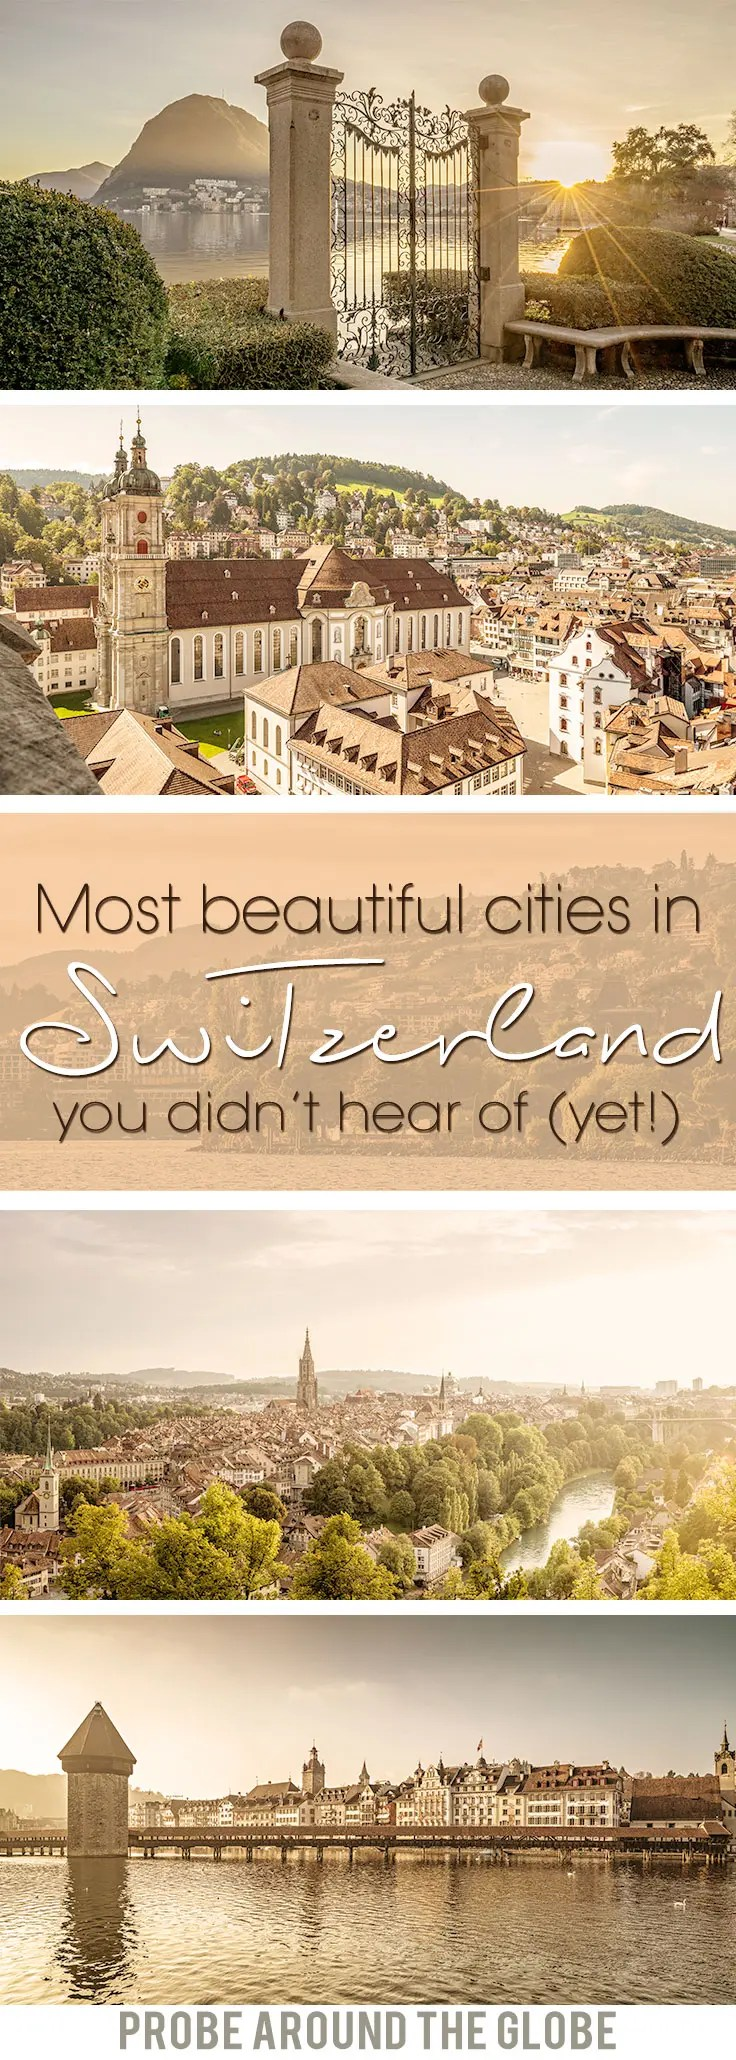 I share the most most beautiful places in Switzerland you cannot miss. I select the best cities in Switzerland to visit and the most scenic towns to stay in #switzerland #beautifulplaces #lugano #montreux #bern #stgallen #swisstowns Probe around the Globe